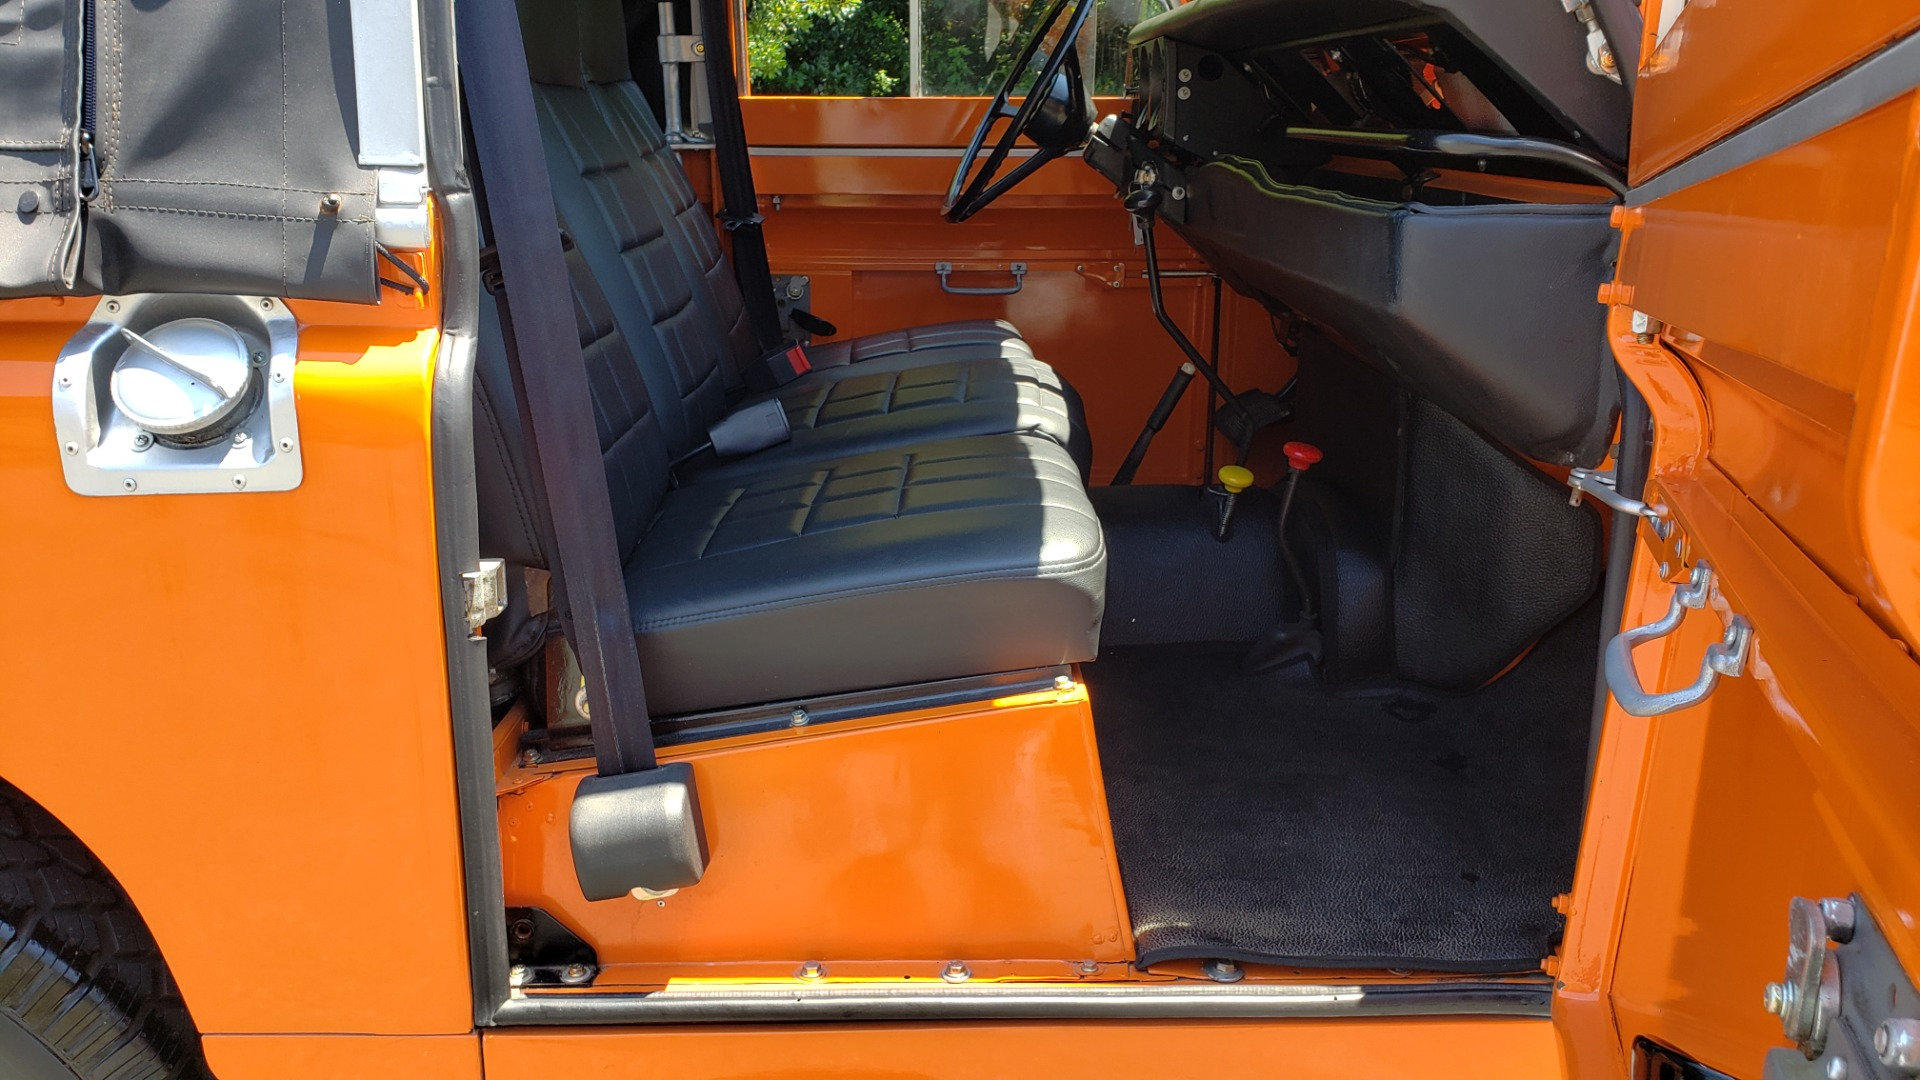 Used 1982 Land Rover SERIES 3 4X4 / SOFT-TOP / FULLY RESTORED / RUNS GREAT for sale $41,900 at Formula Imports in Charlotte NC 28227 44